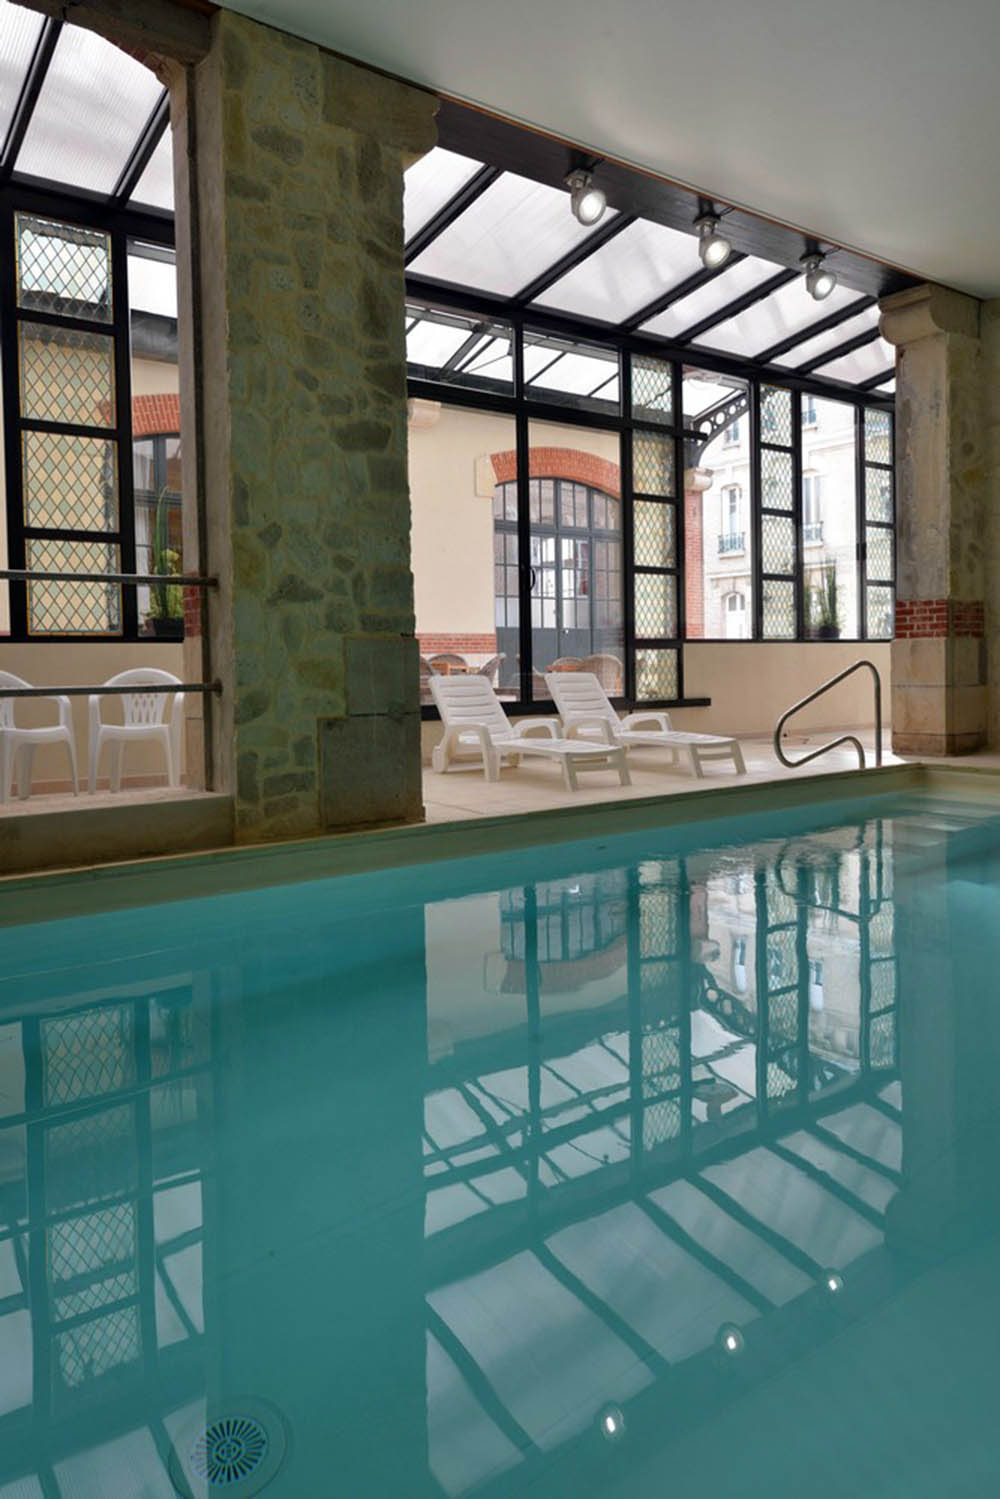 Hotel Castel Jeanson - Ay Champagne Proche Epernay Au Coeur ... encequiconcerne Piscine Epernay